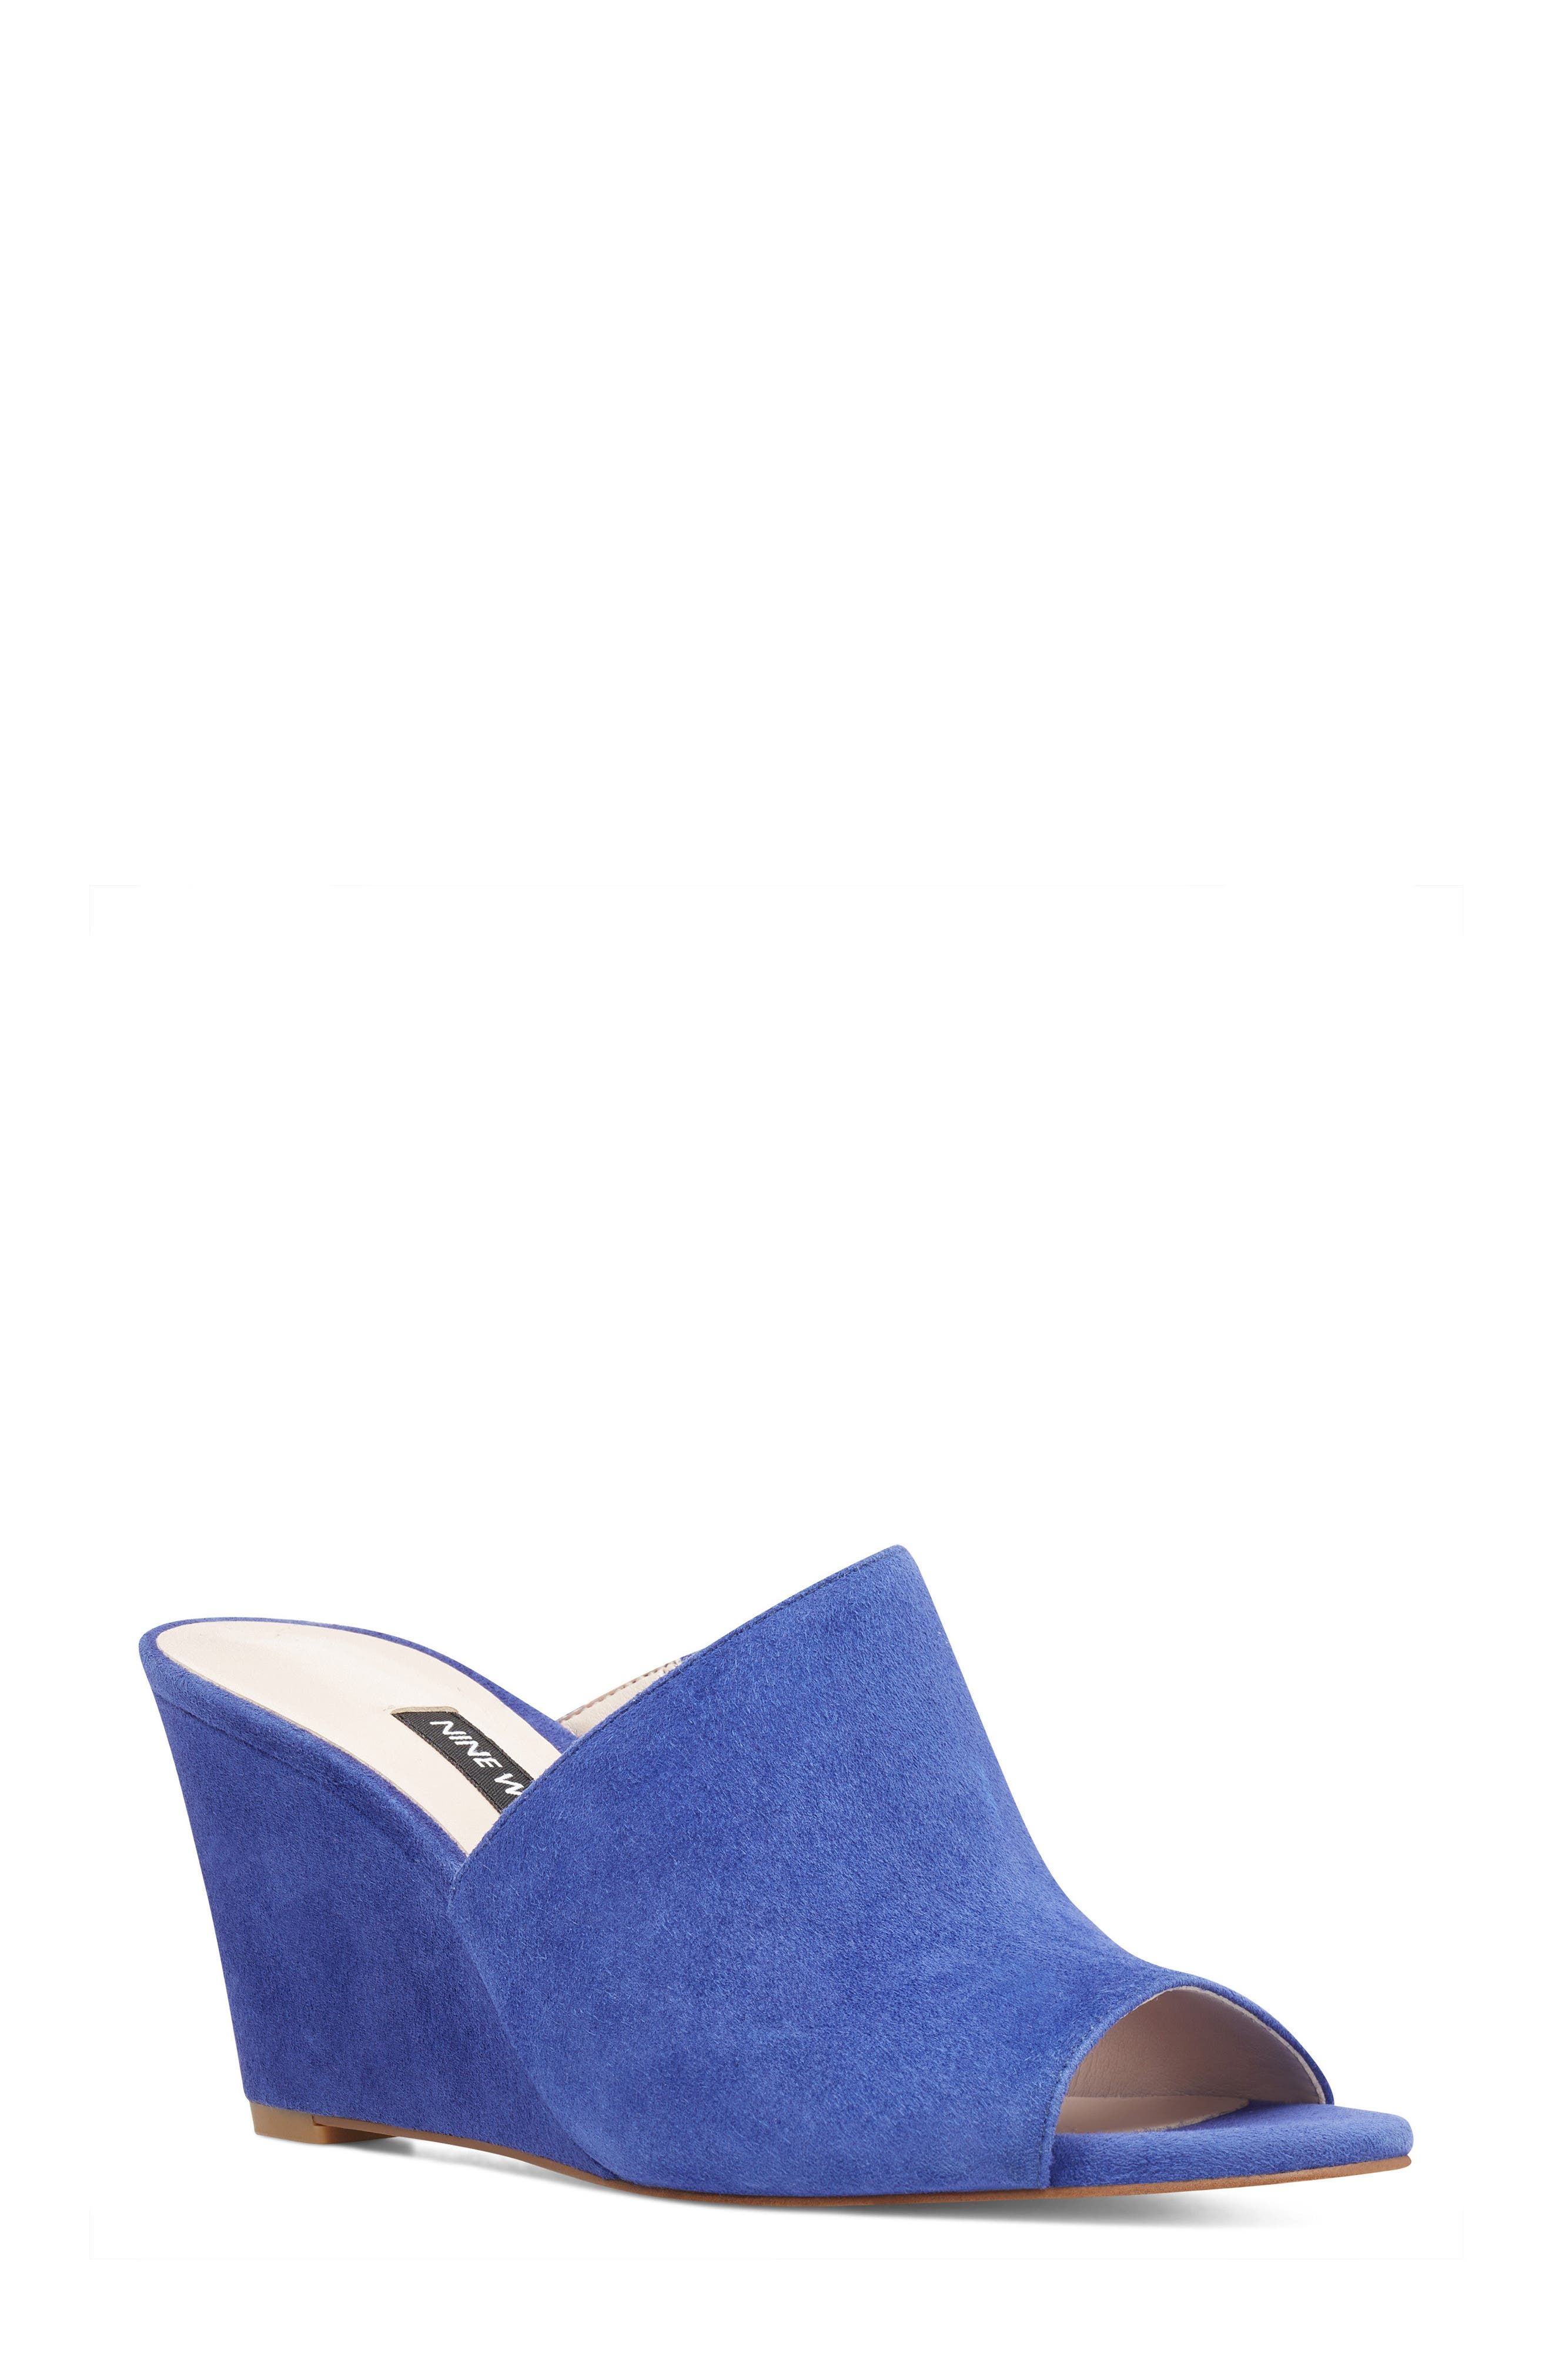 Janissah Wedge,                             Main thumbnail 1, color,                             DARK BLUE SUEDE